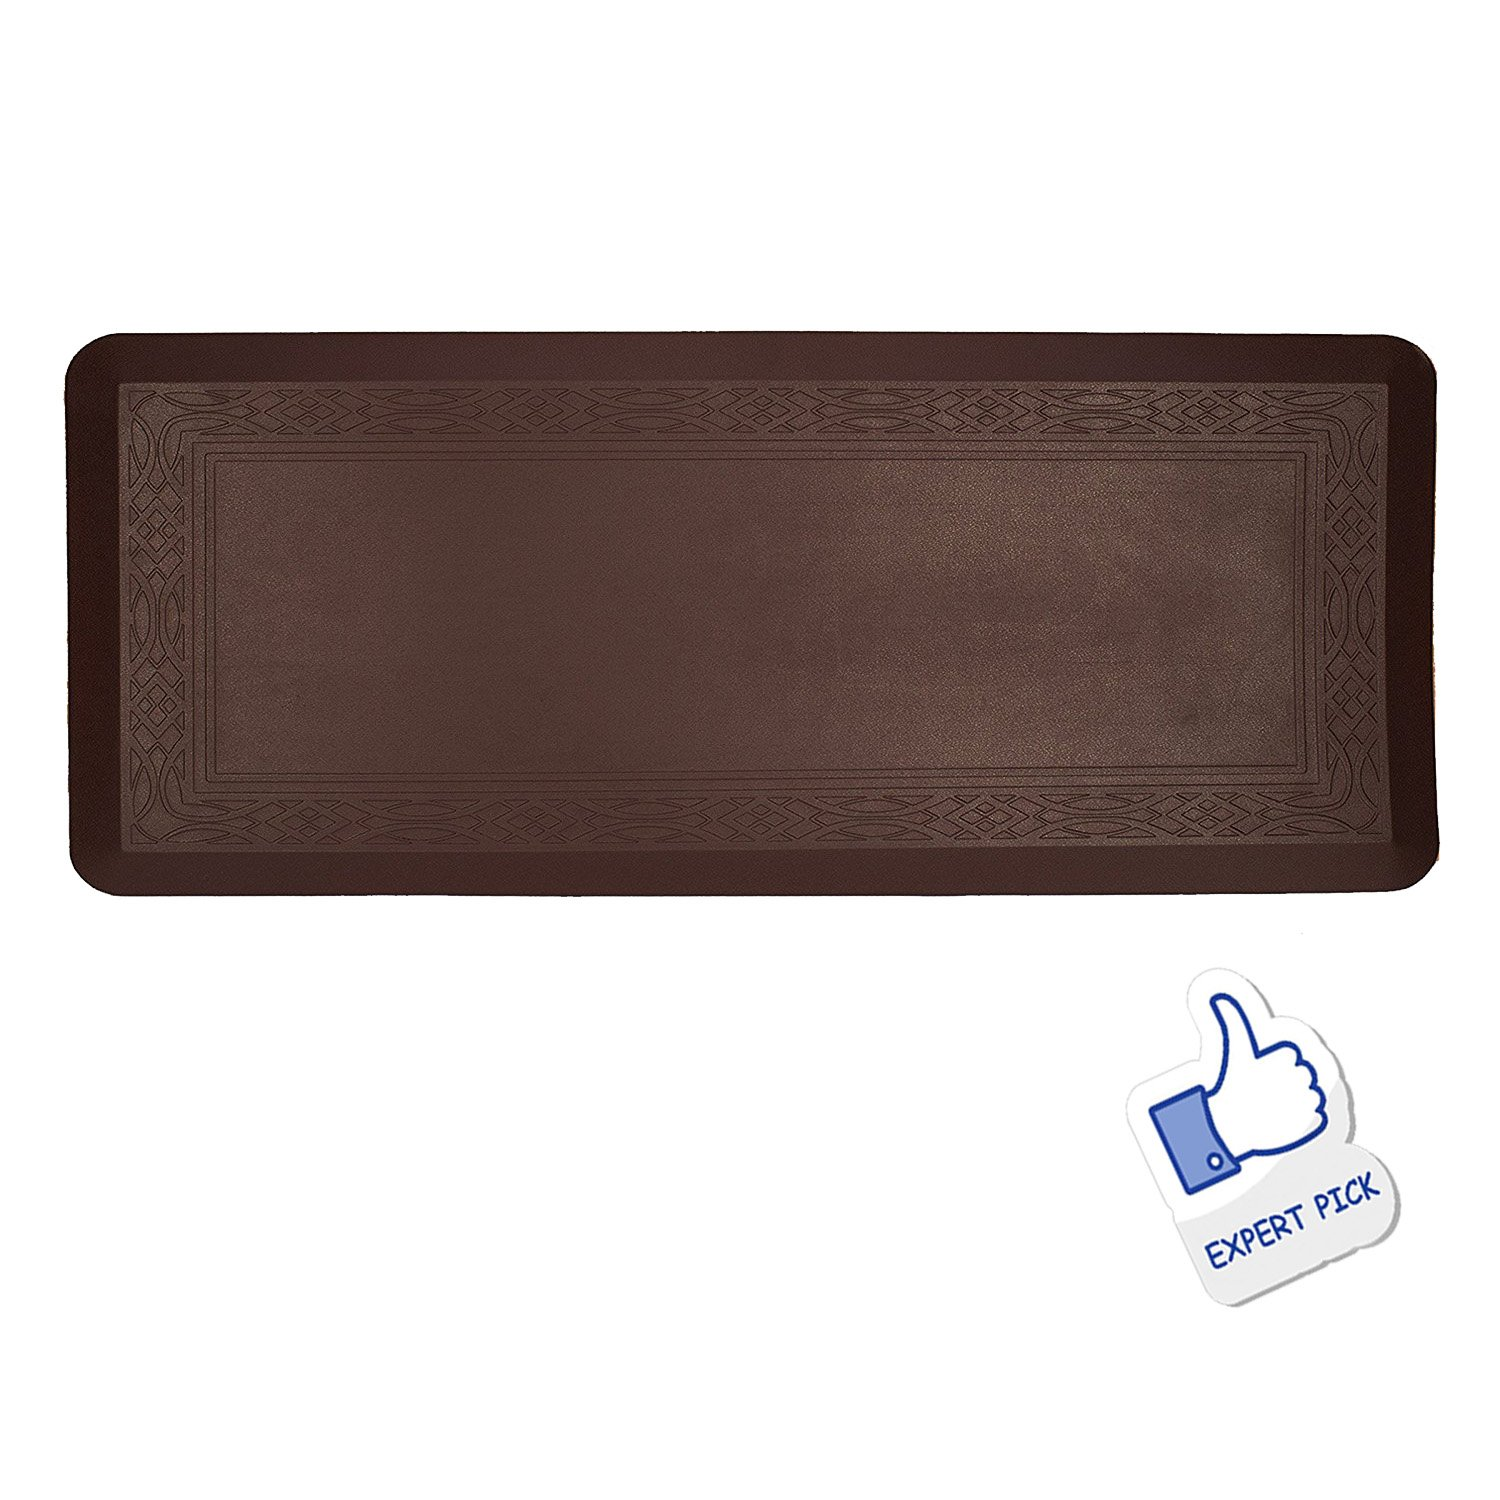 Grand Era Anti-Fatigue Comfort Mat- 24 in by 60 in- Multi Surface All-Purpose Luxurious Comfort - for Kitchen, Bathroom or Workstations, Coffee